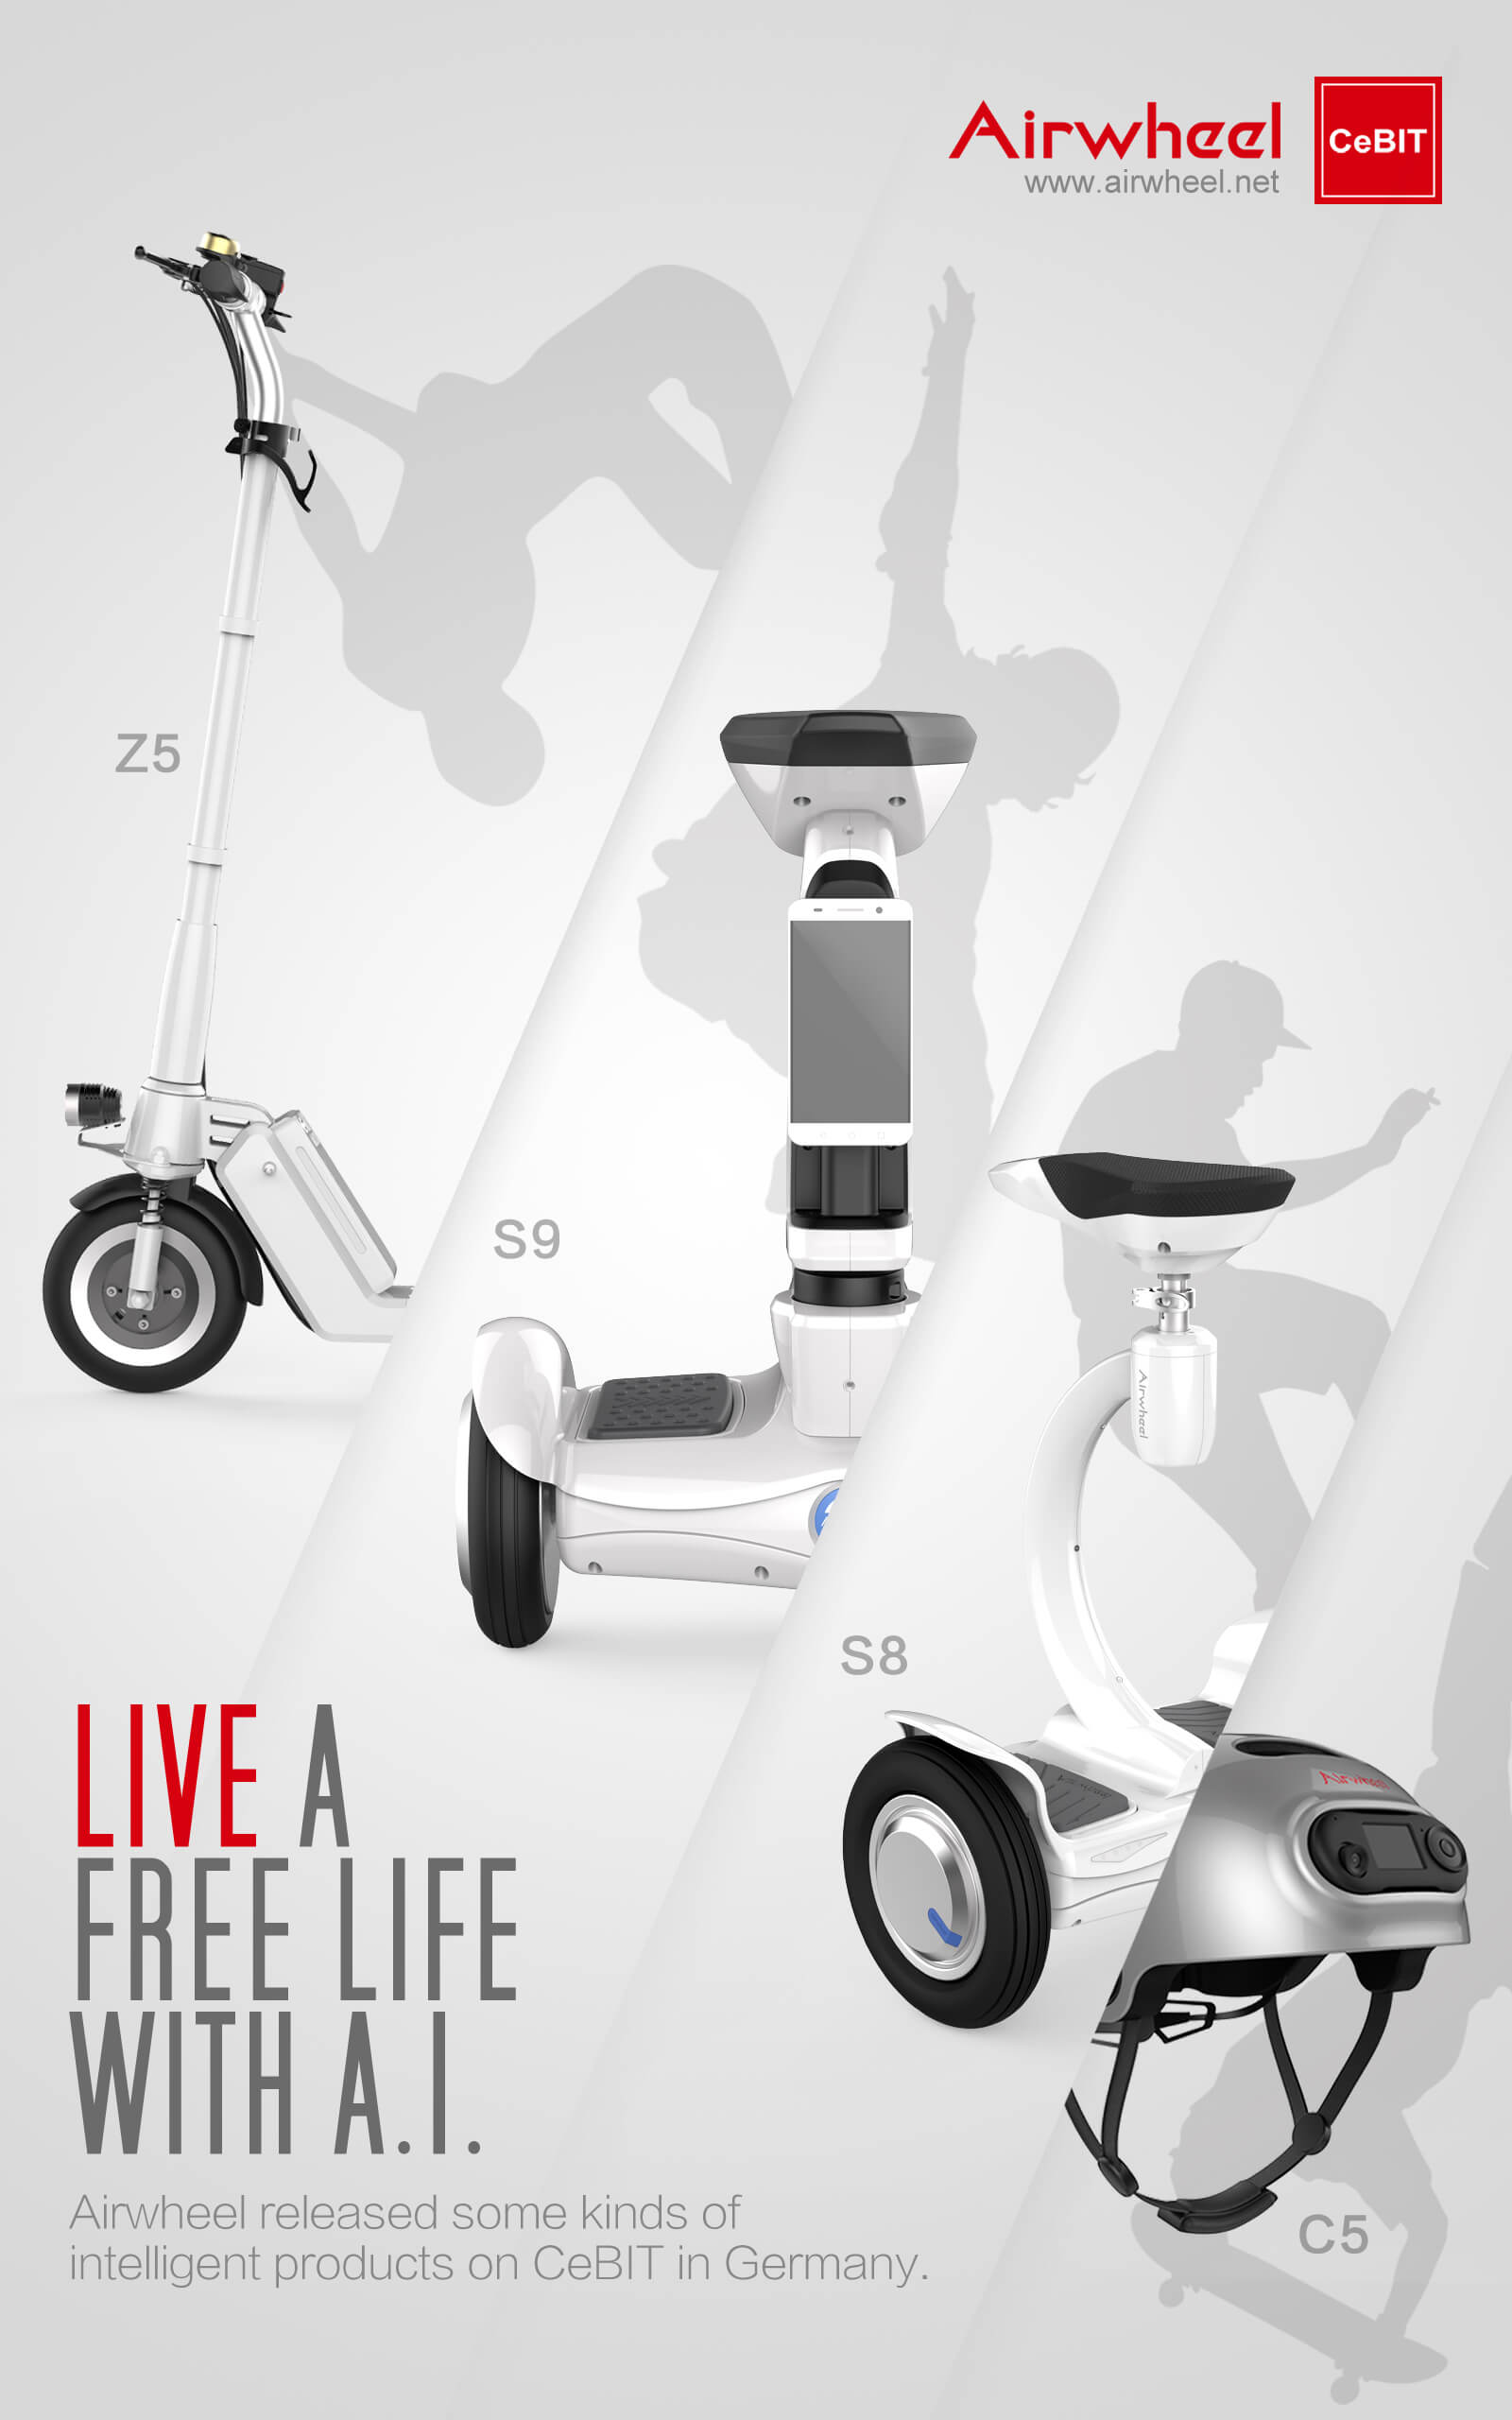 airwheel intelligence